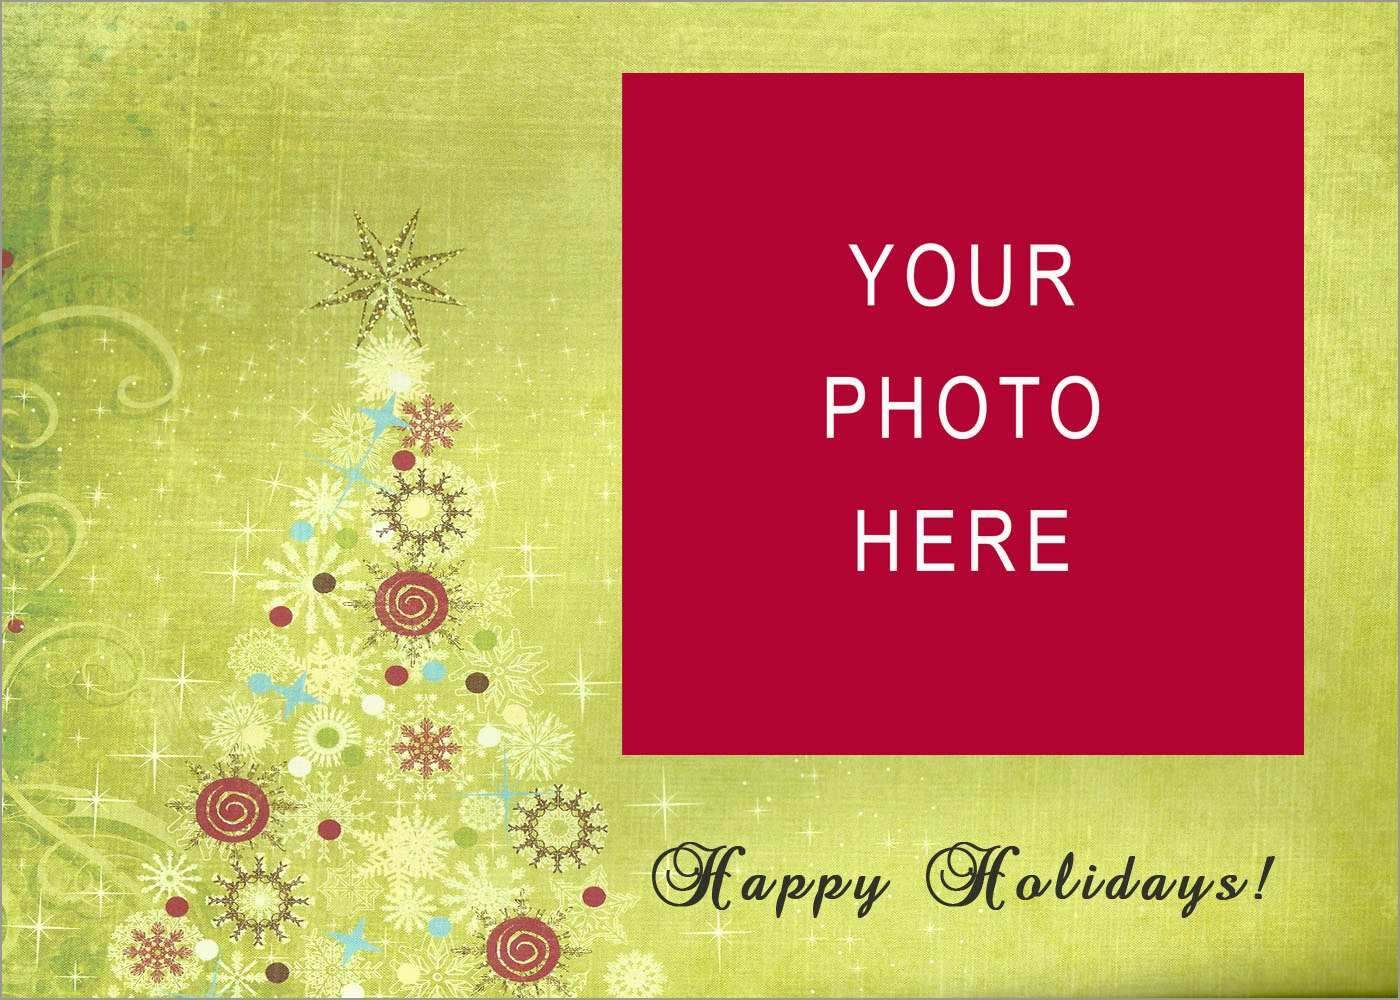 New Photo Card Template Free | Best Of Template - Free Printable Christmas Cards With Photo Insert